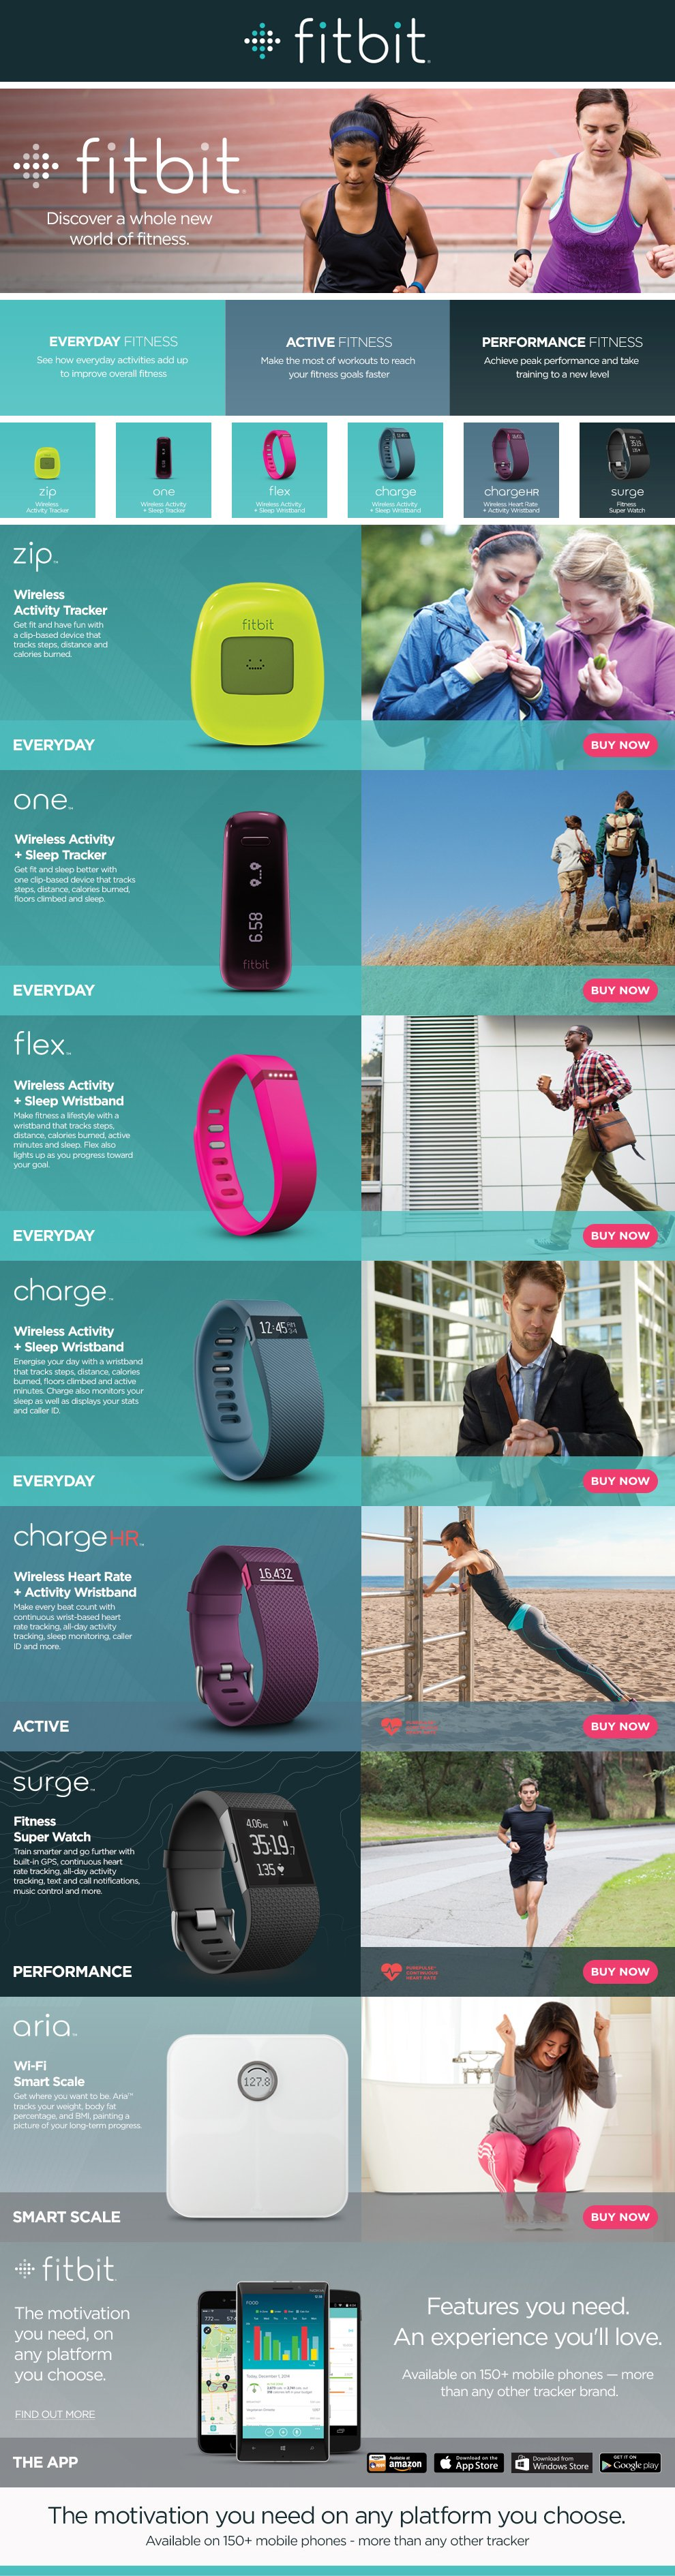 Fitbit Brand Store with Amazon logo